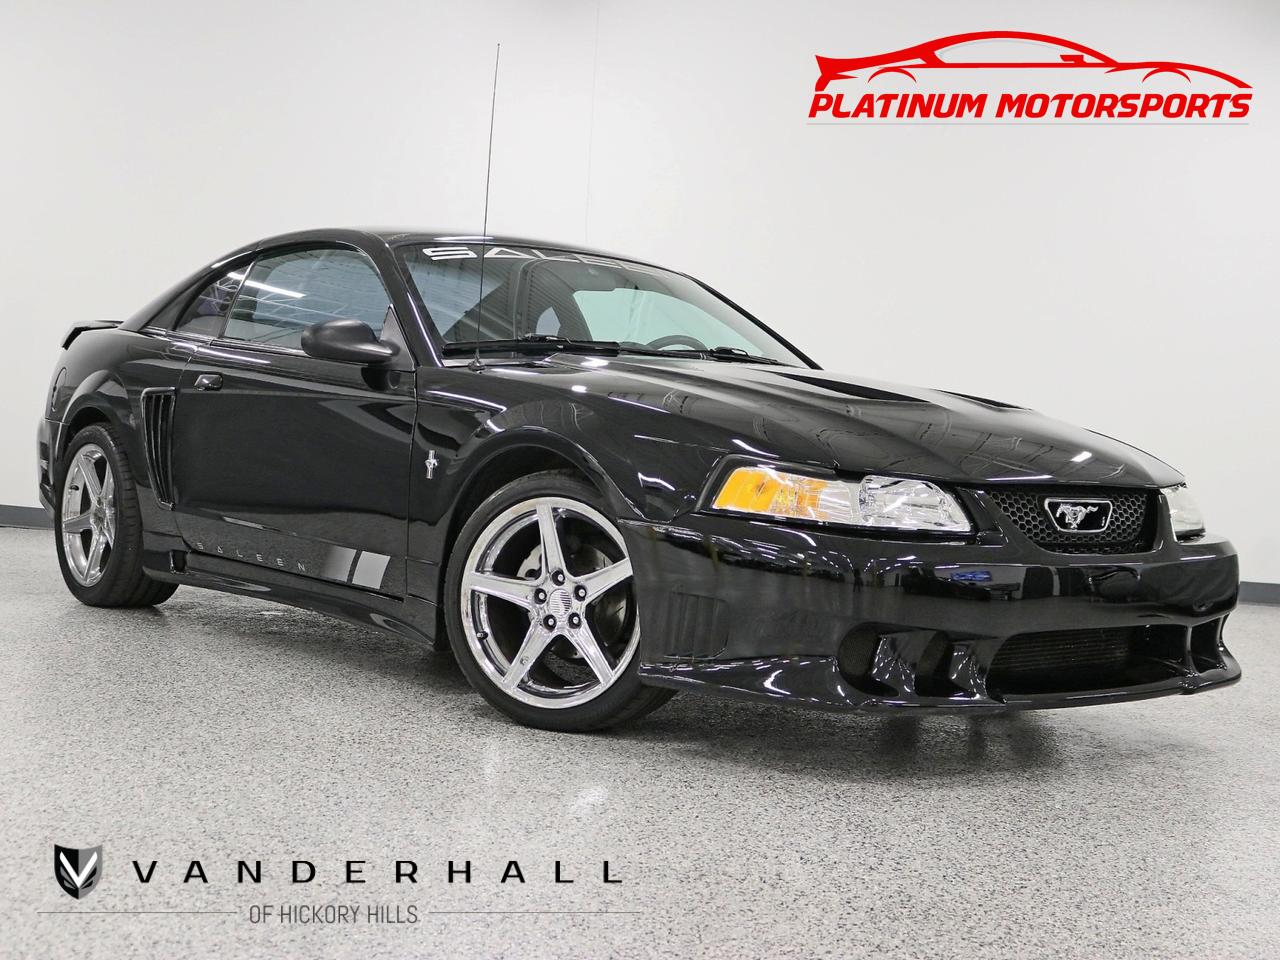 2000 Ford Mustang Saleen SC 2 Owner Rare 1 of 232 Produced Carfax Certified Loaded Hickory Hills IL